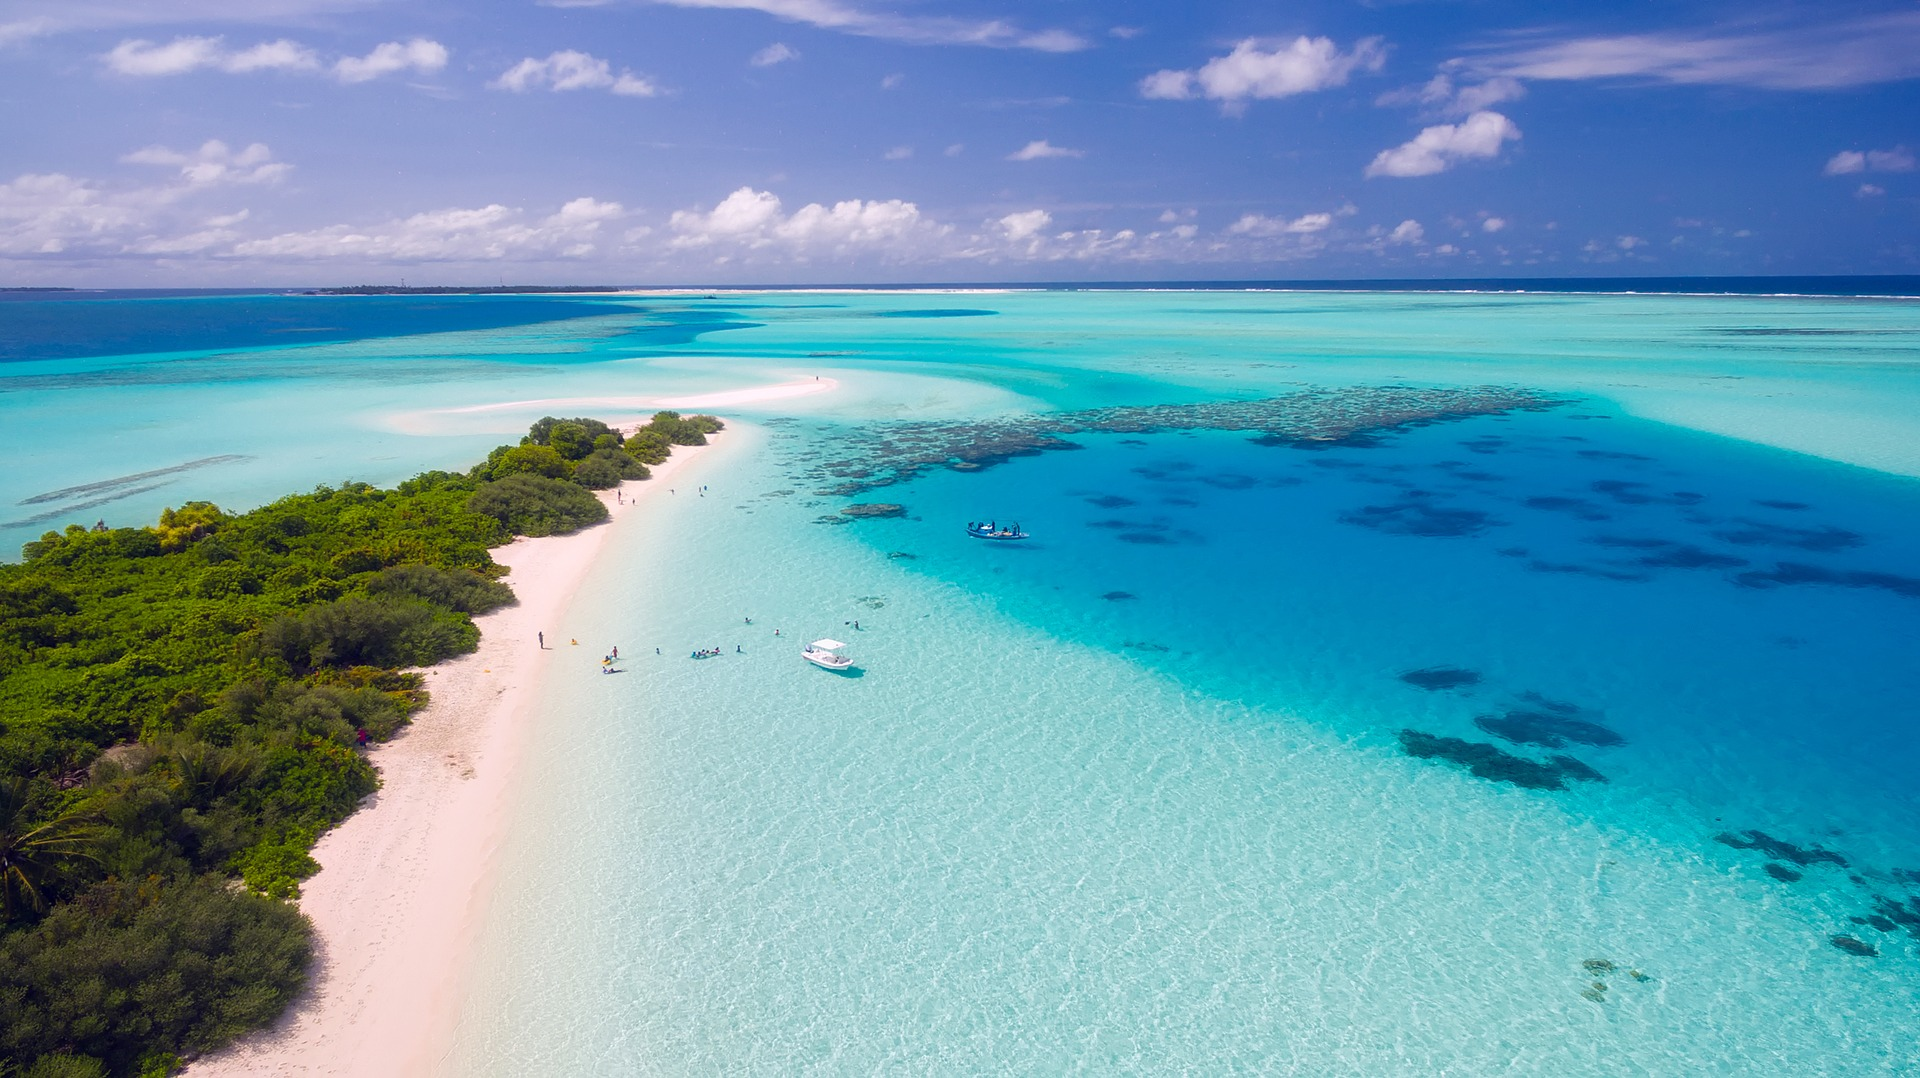 Beach in the maldives with white sand and stunning blue water